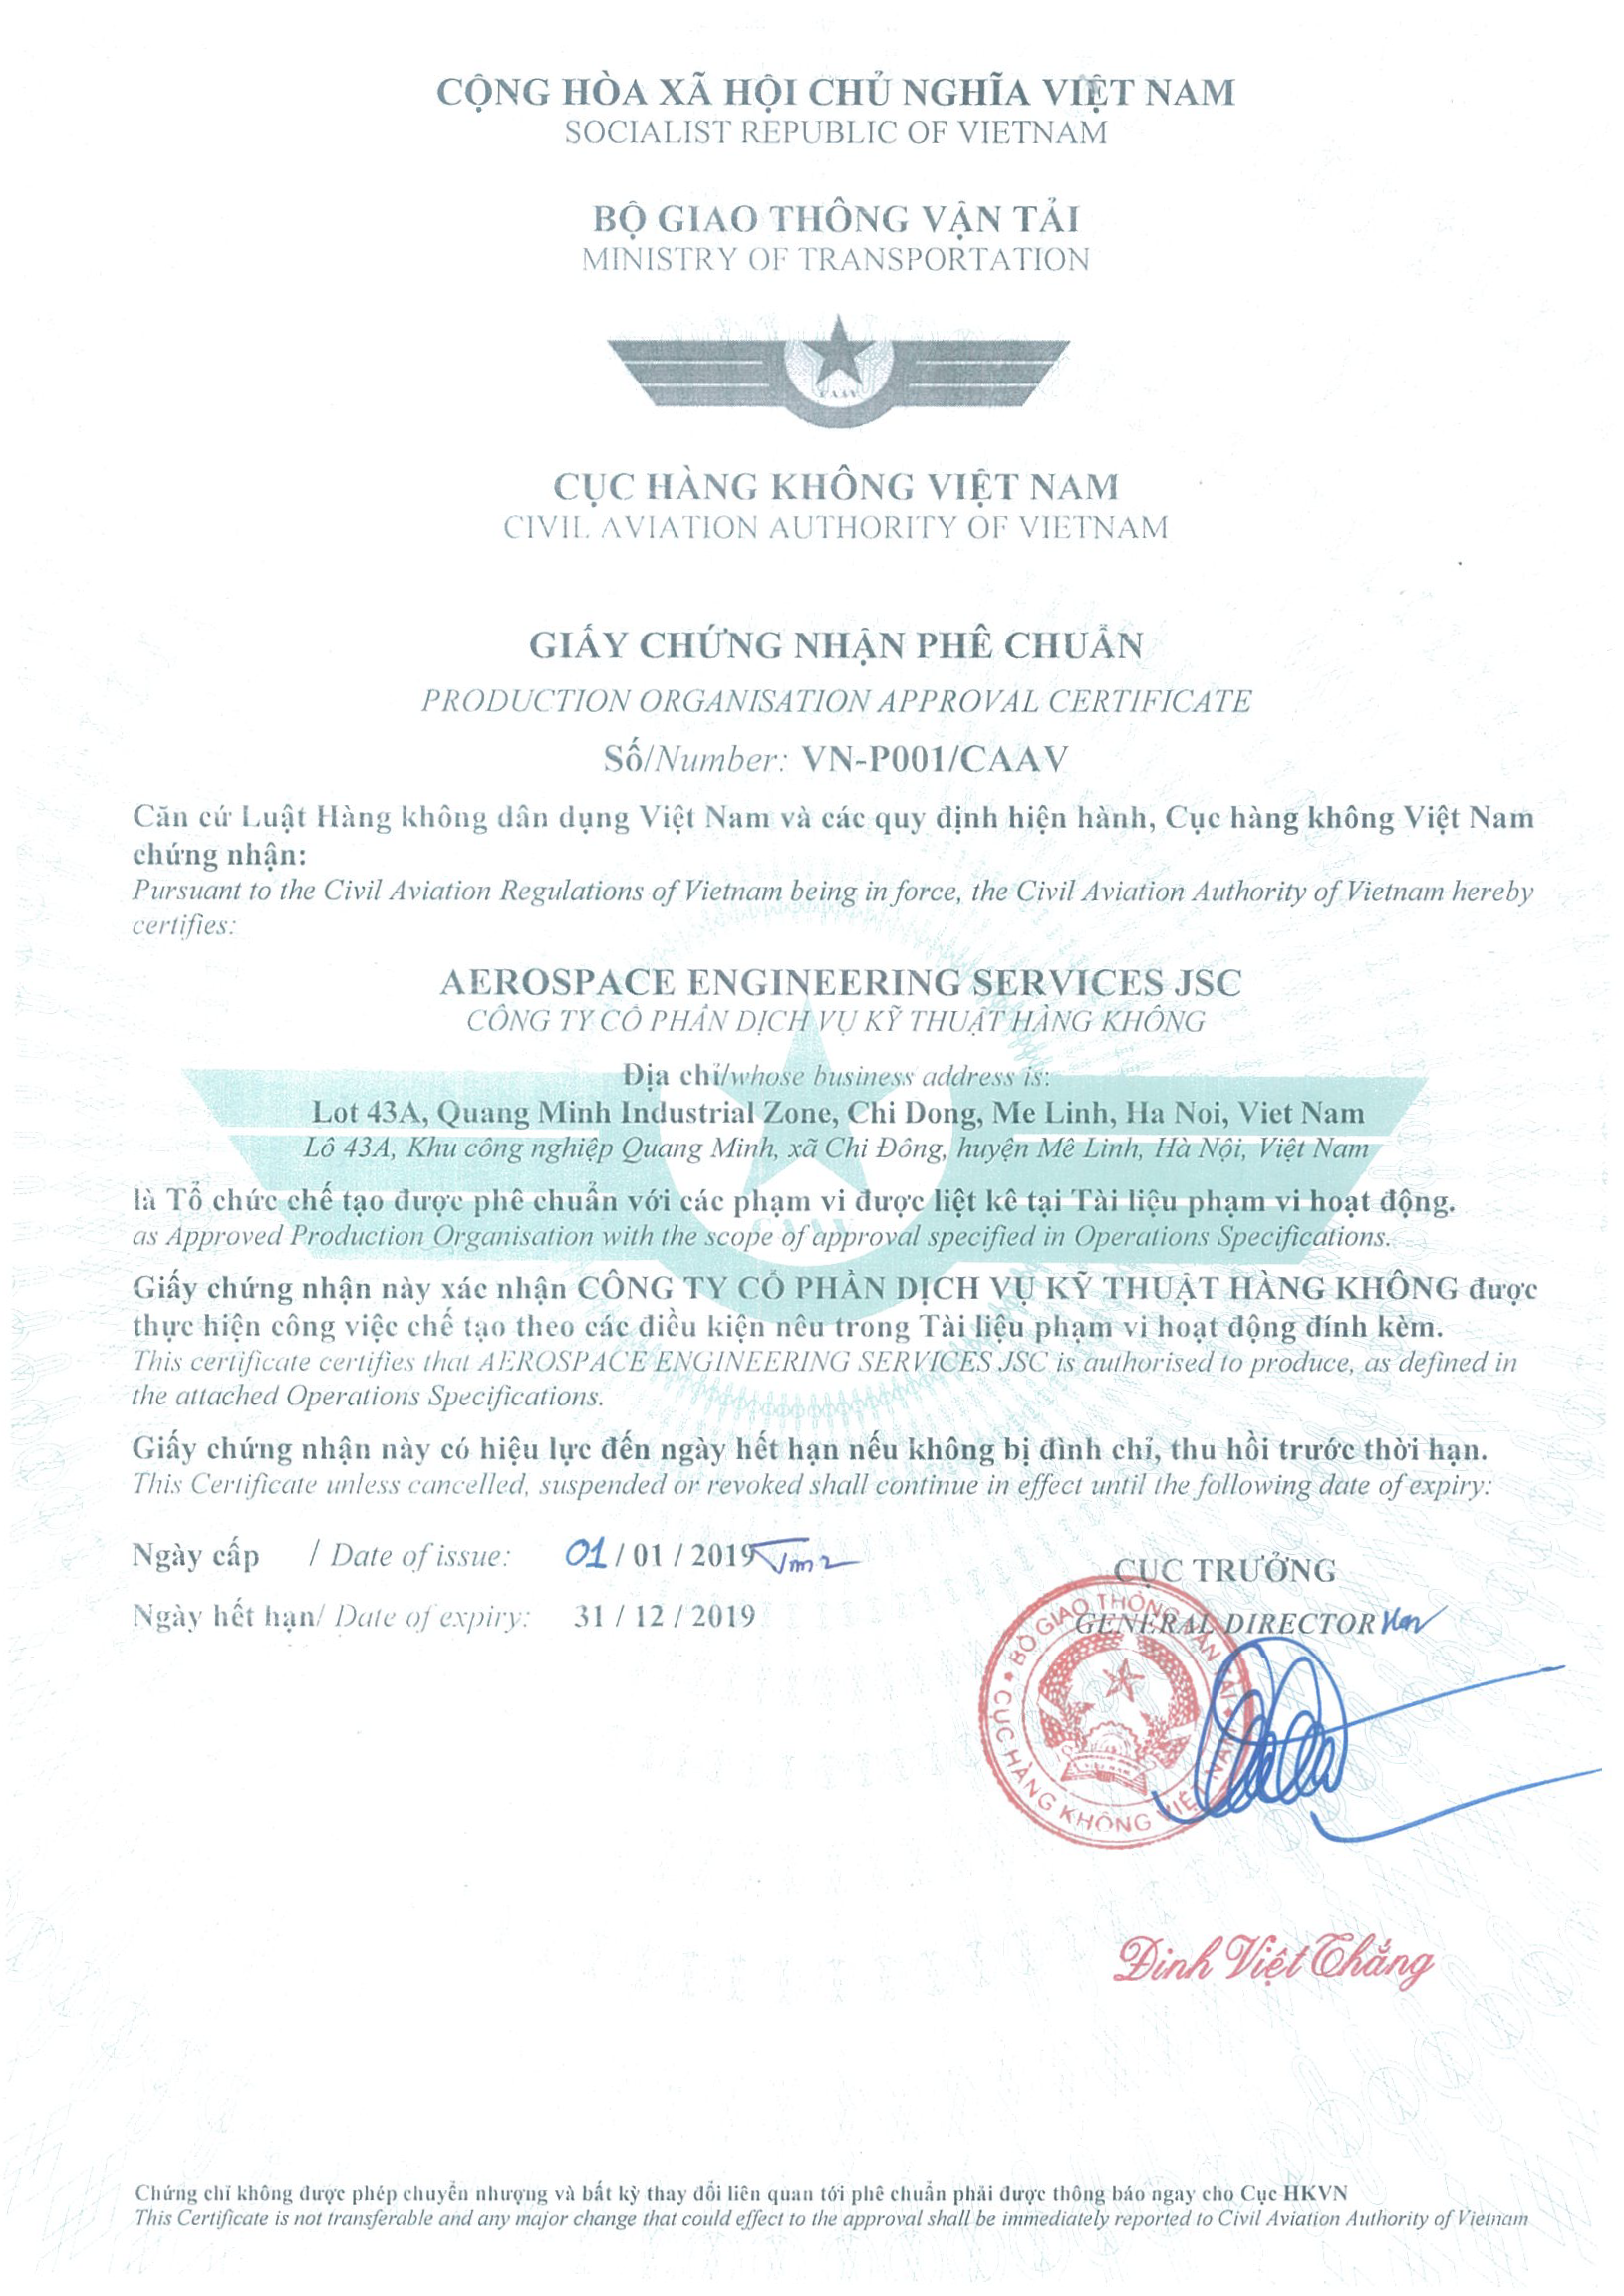 CAAV Production Organisation Approval Certificate